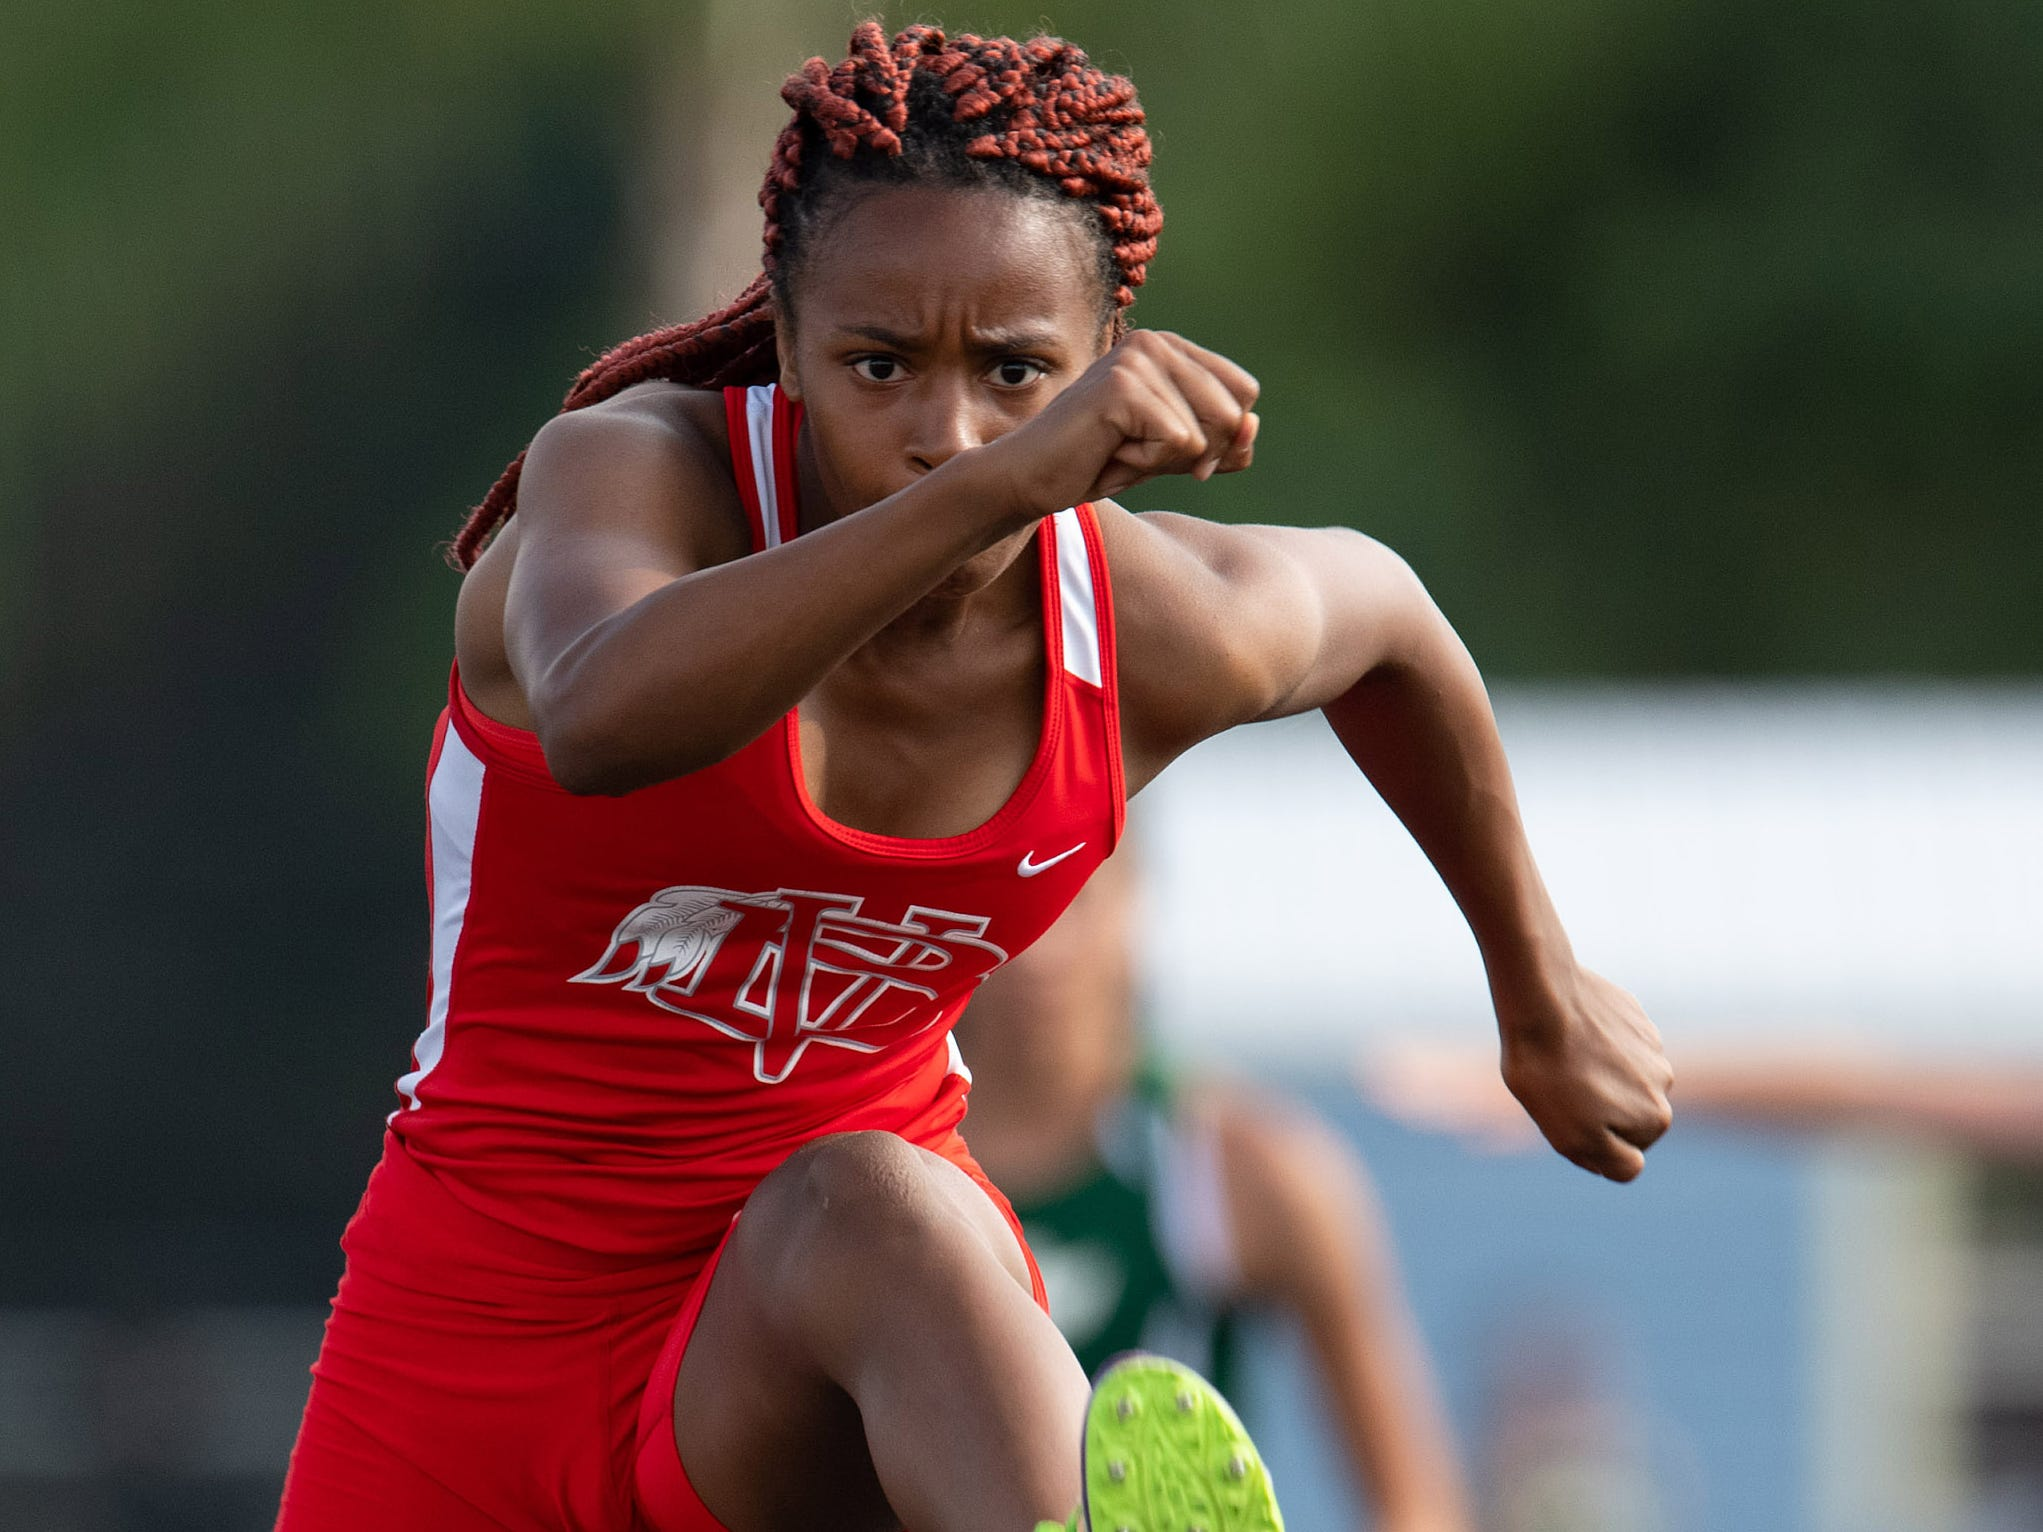 Vero Beach's Vonisha Kaigler competes in the 100 meter hurdle preliminaries during the District 9-4A Track Meet at Martin County High School on Wednesday, April 10, 2019, in Stuart.